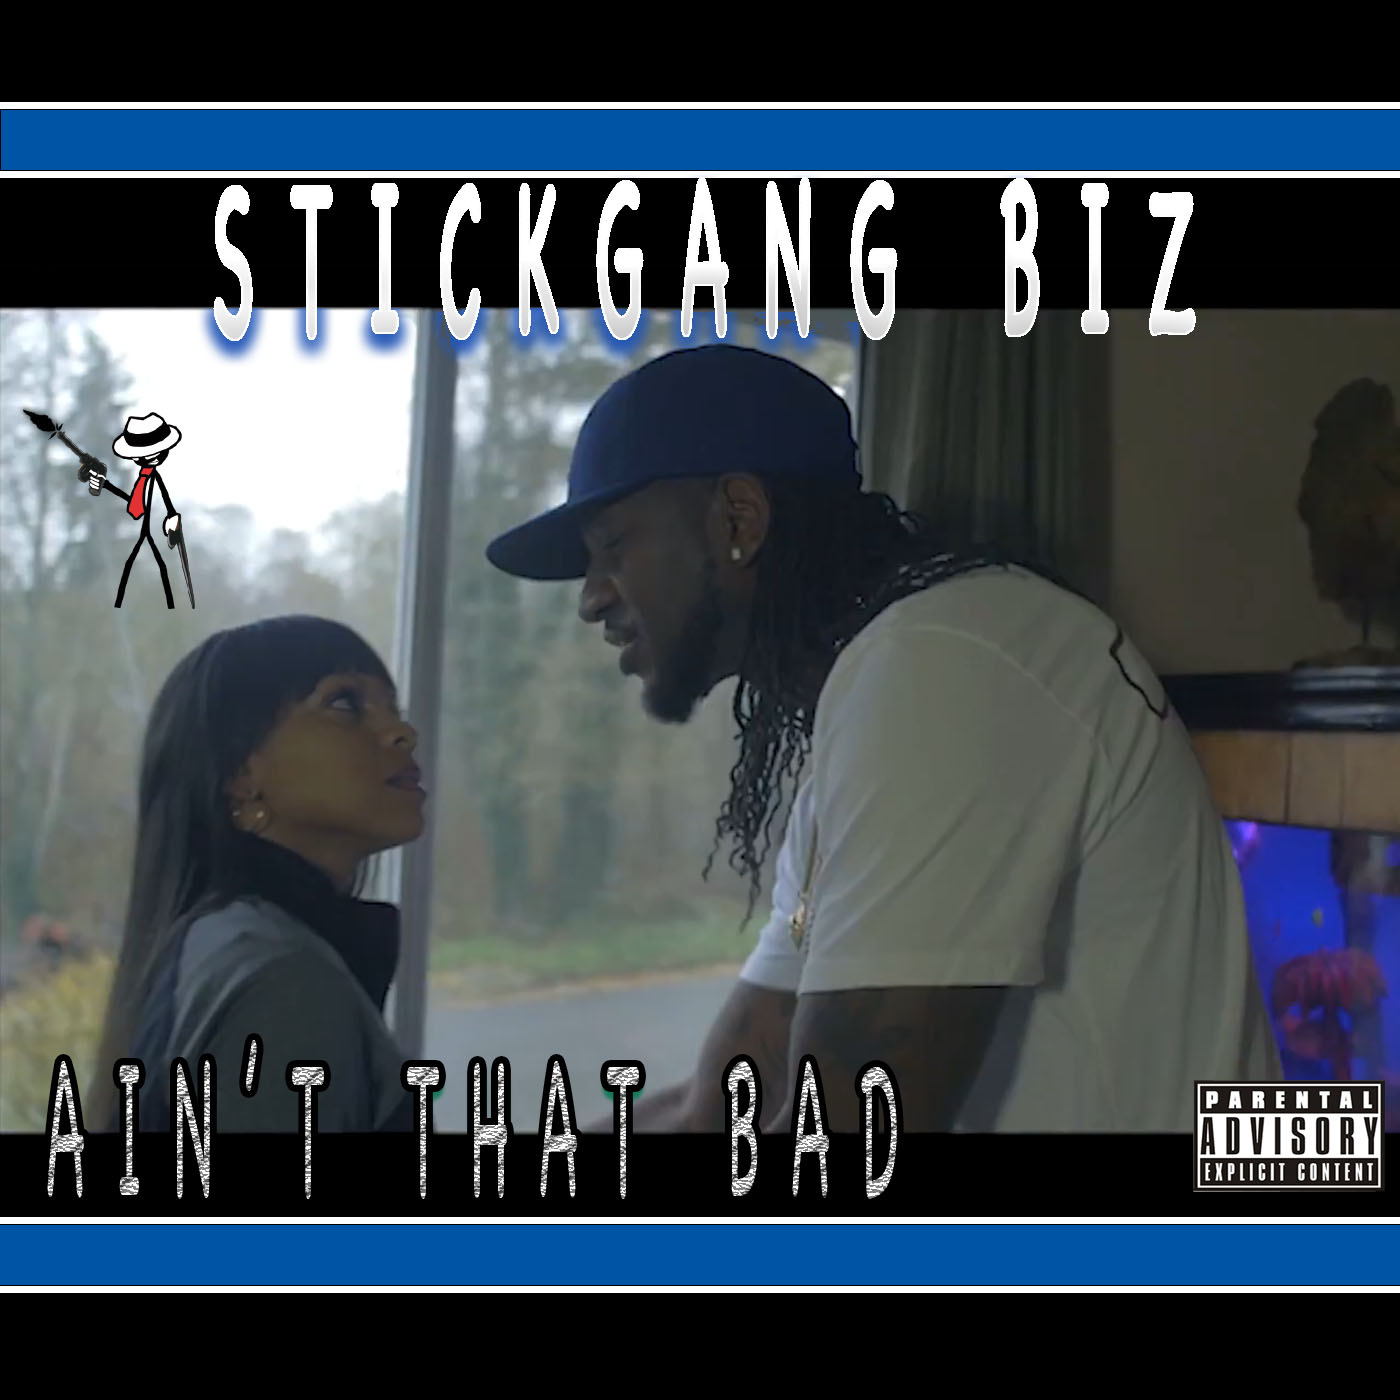 Aint that bad by Stickgang Biz ft Larry Stevens